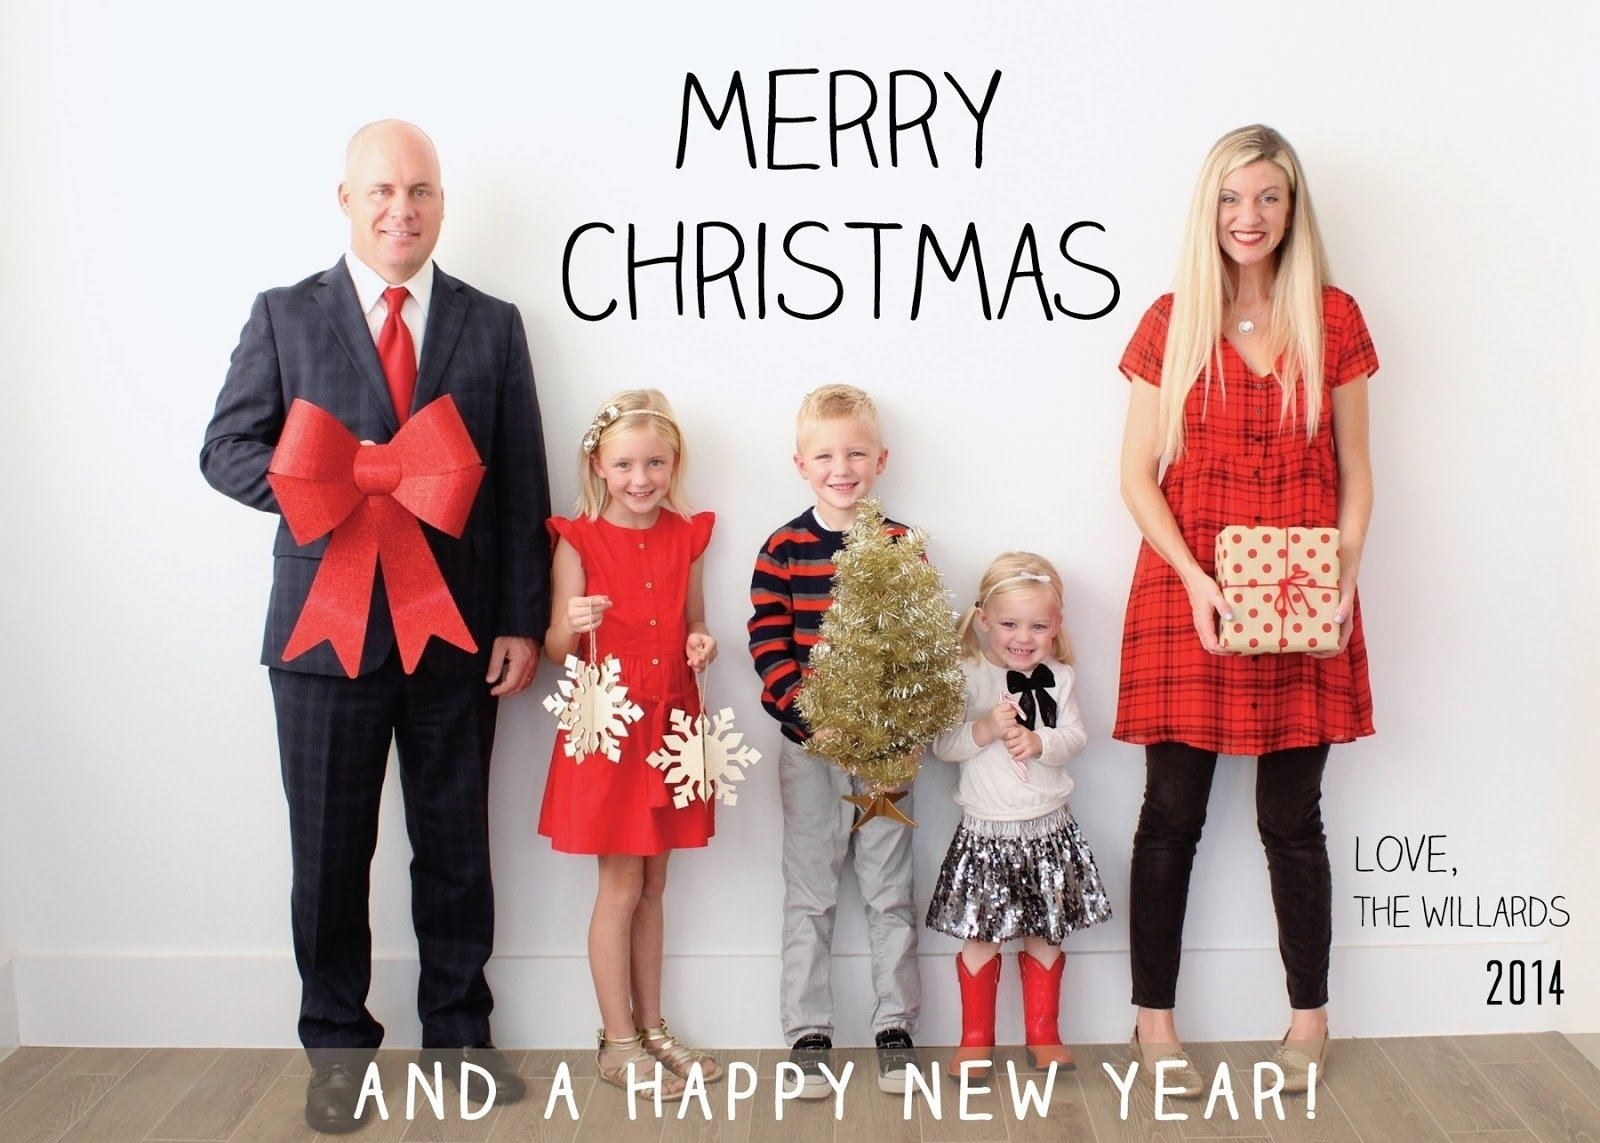 10 Most Popular Cute Family Christmas Card Ideas a merry 2014 christmas card from our family to yours made everyday 3 2020